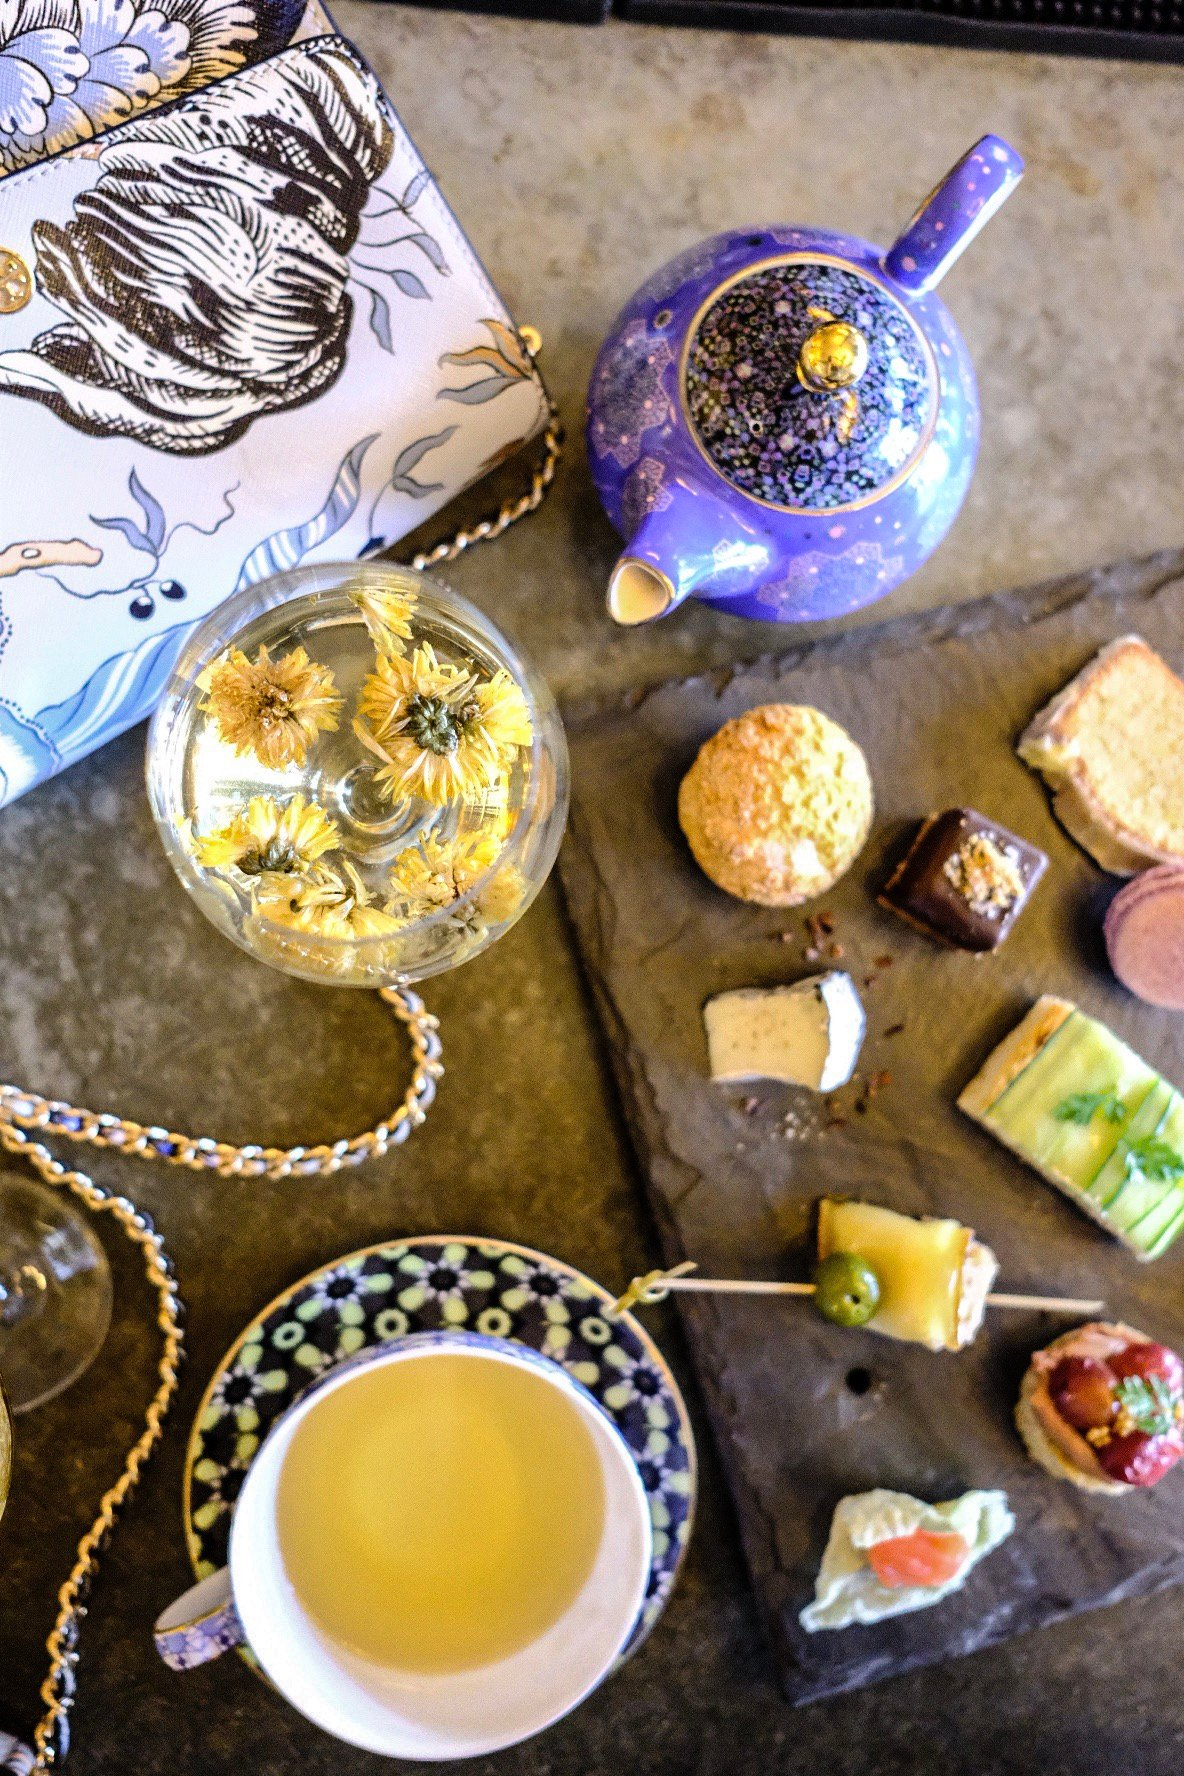 Lifestyle Blogger Jenny Meassick of Chocolate & Lace shares her series of Where to Eat in Philly with Fork Restaurant High Tea.